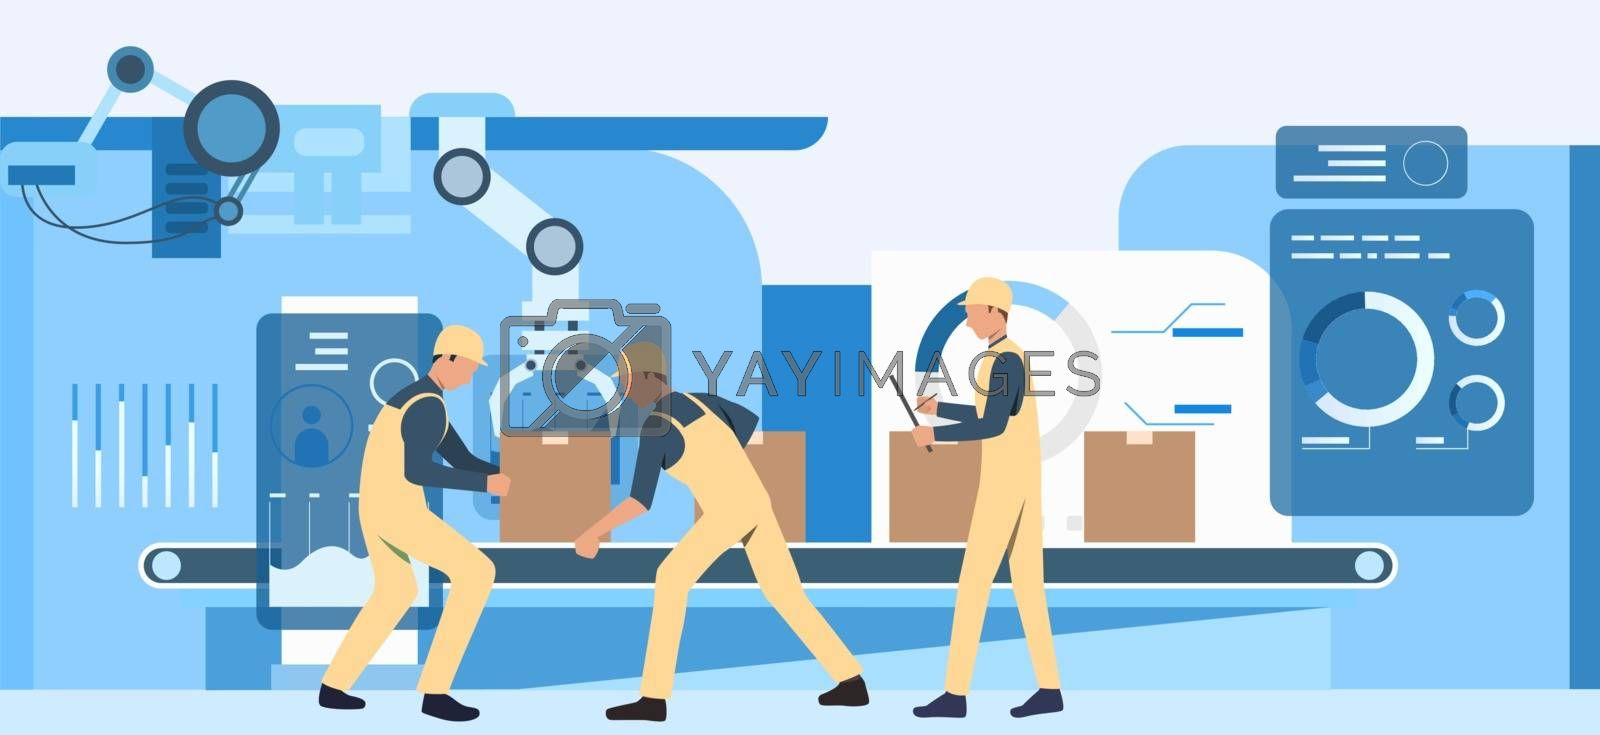 People working at factory webpage. Operational workers, conveyor belt, assembly line. Industry concept. Vector illustration for topics like production, machine, blue color